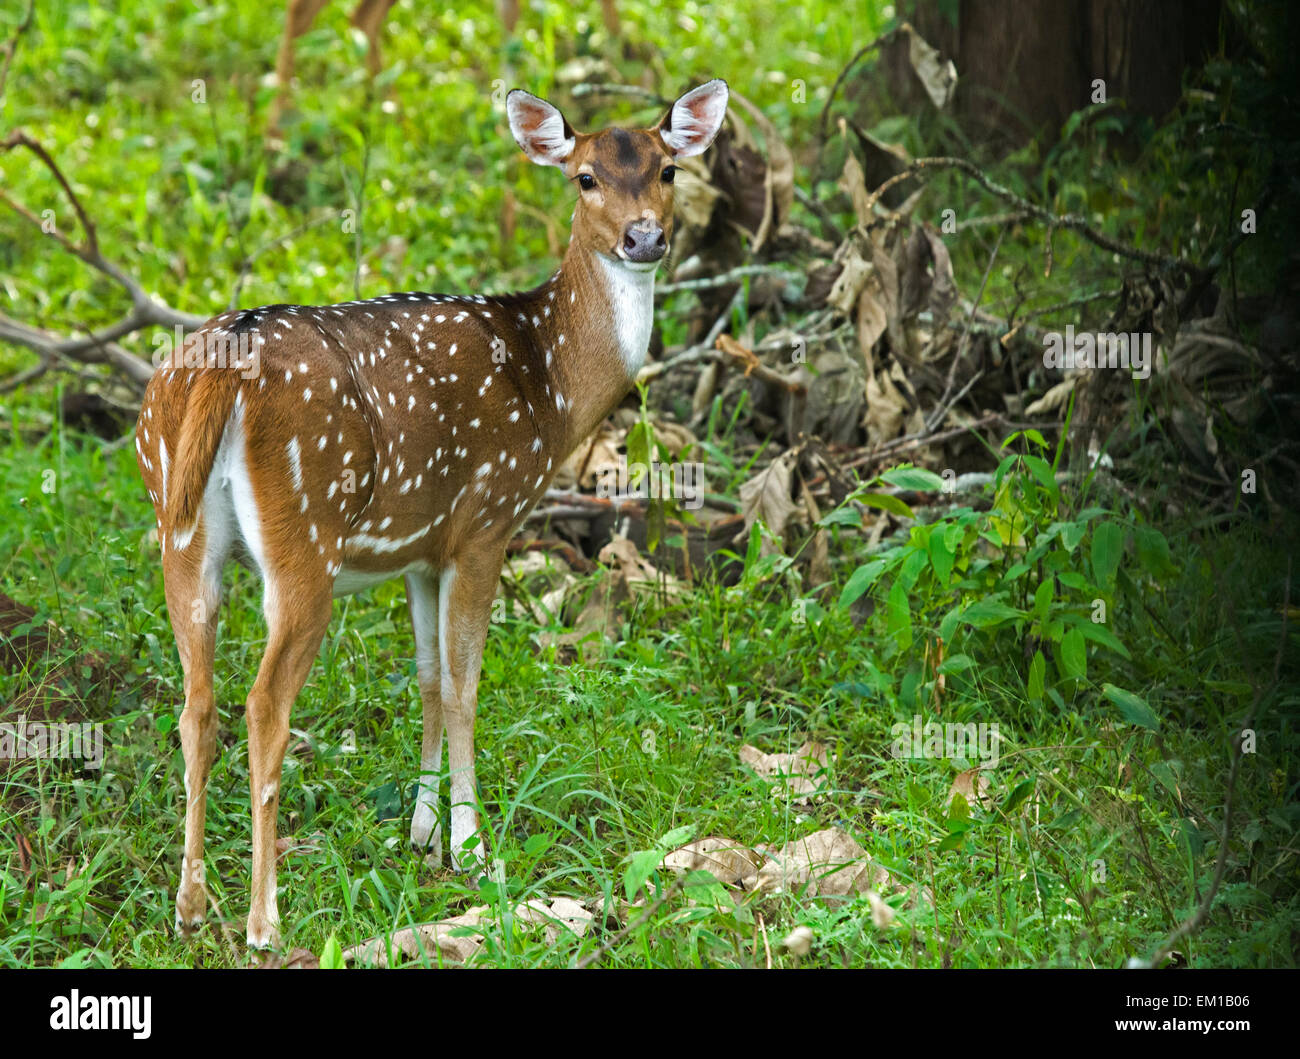 Spotted Deer, Cervus axis, Axishirsch, young deer in south indian forest - Stock Image